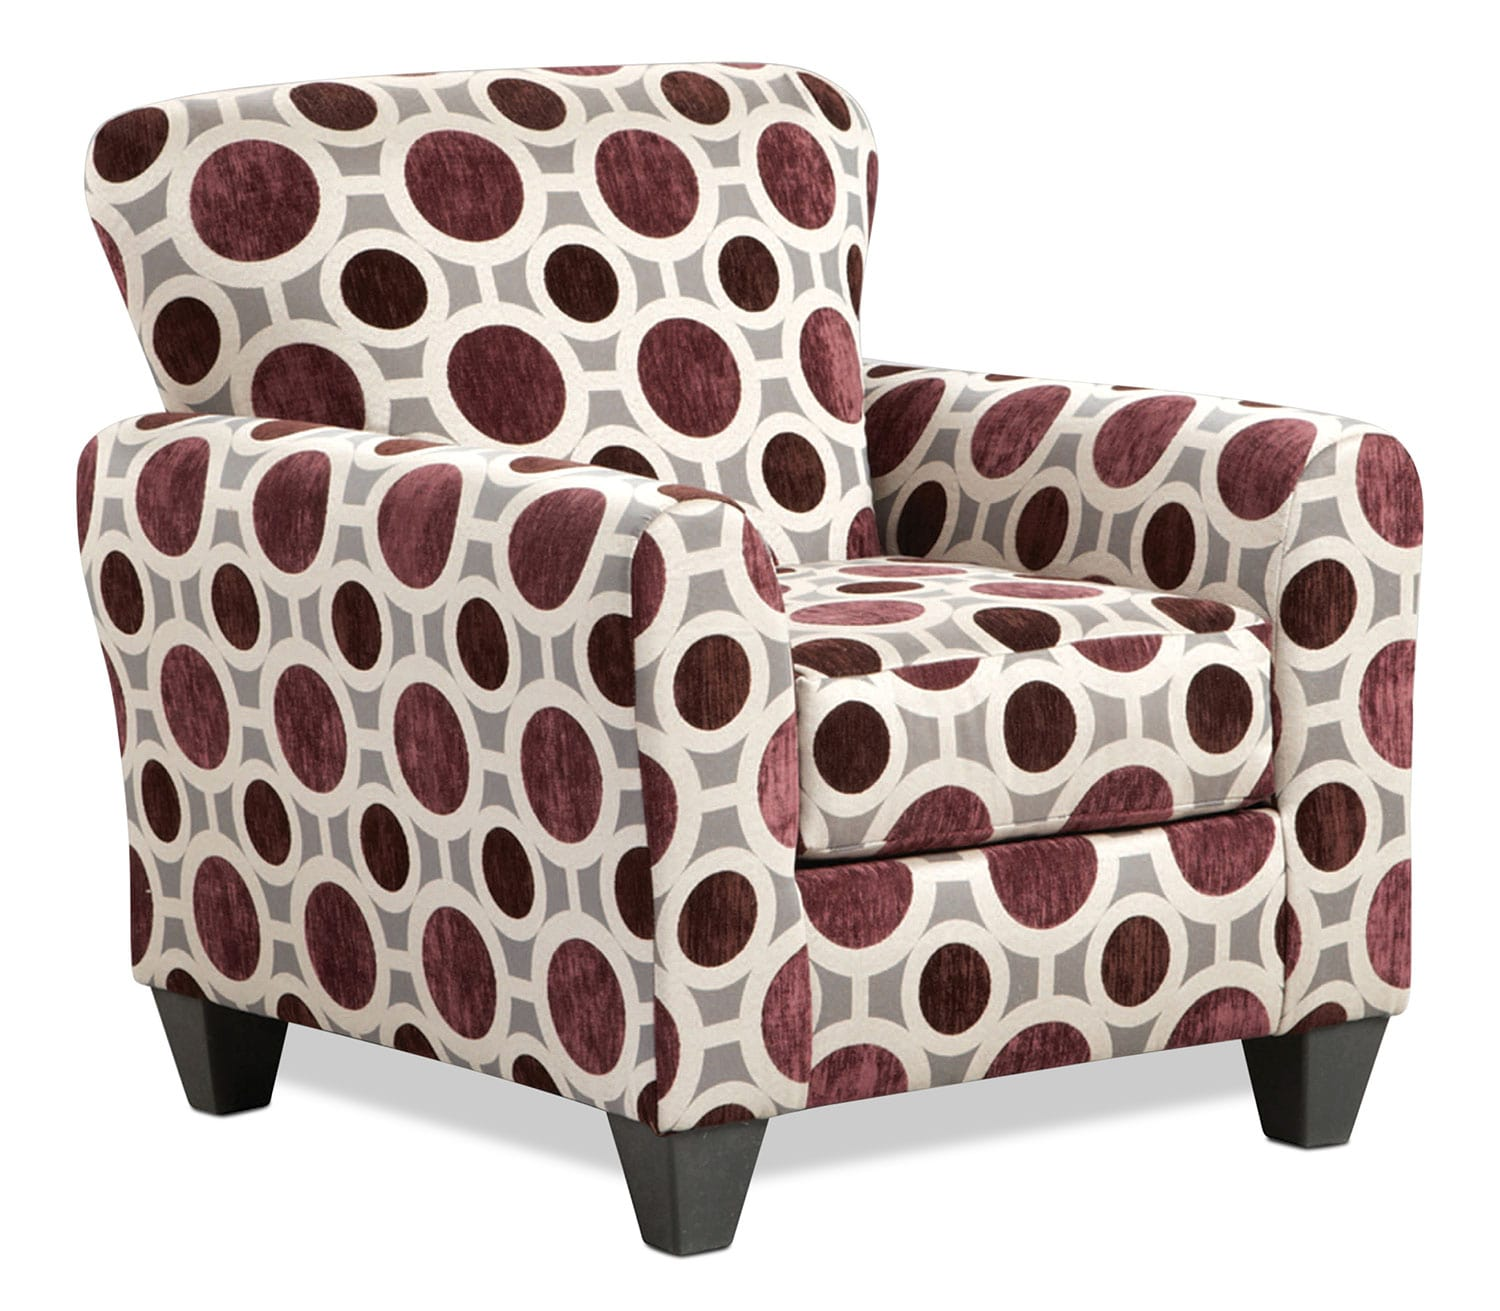 Living Room Furniture - Roseville Accent Chair - Geometric Mulberry